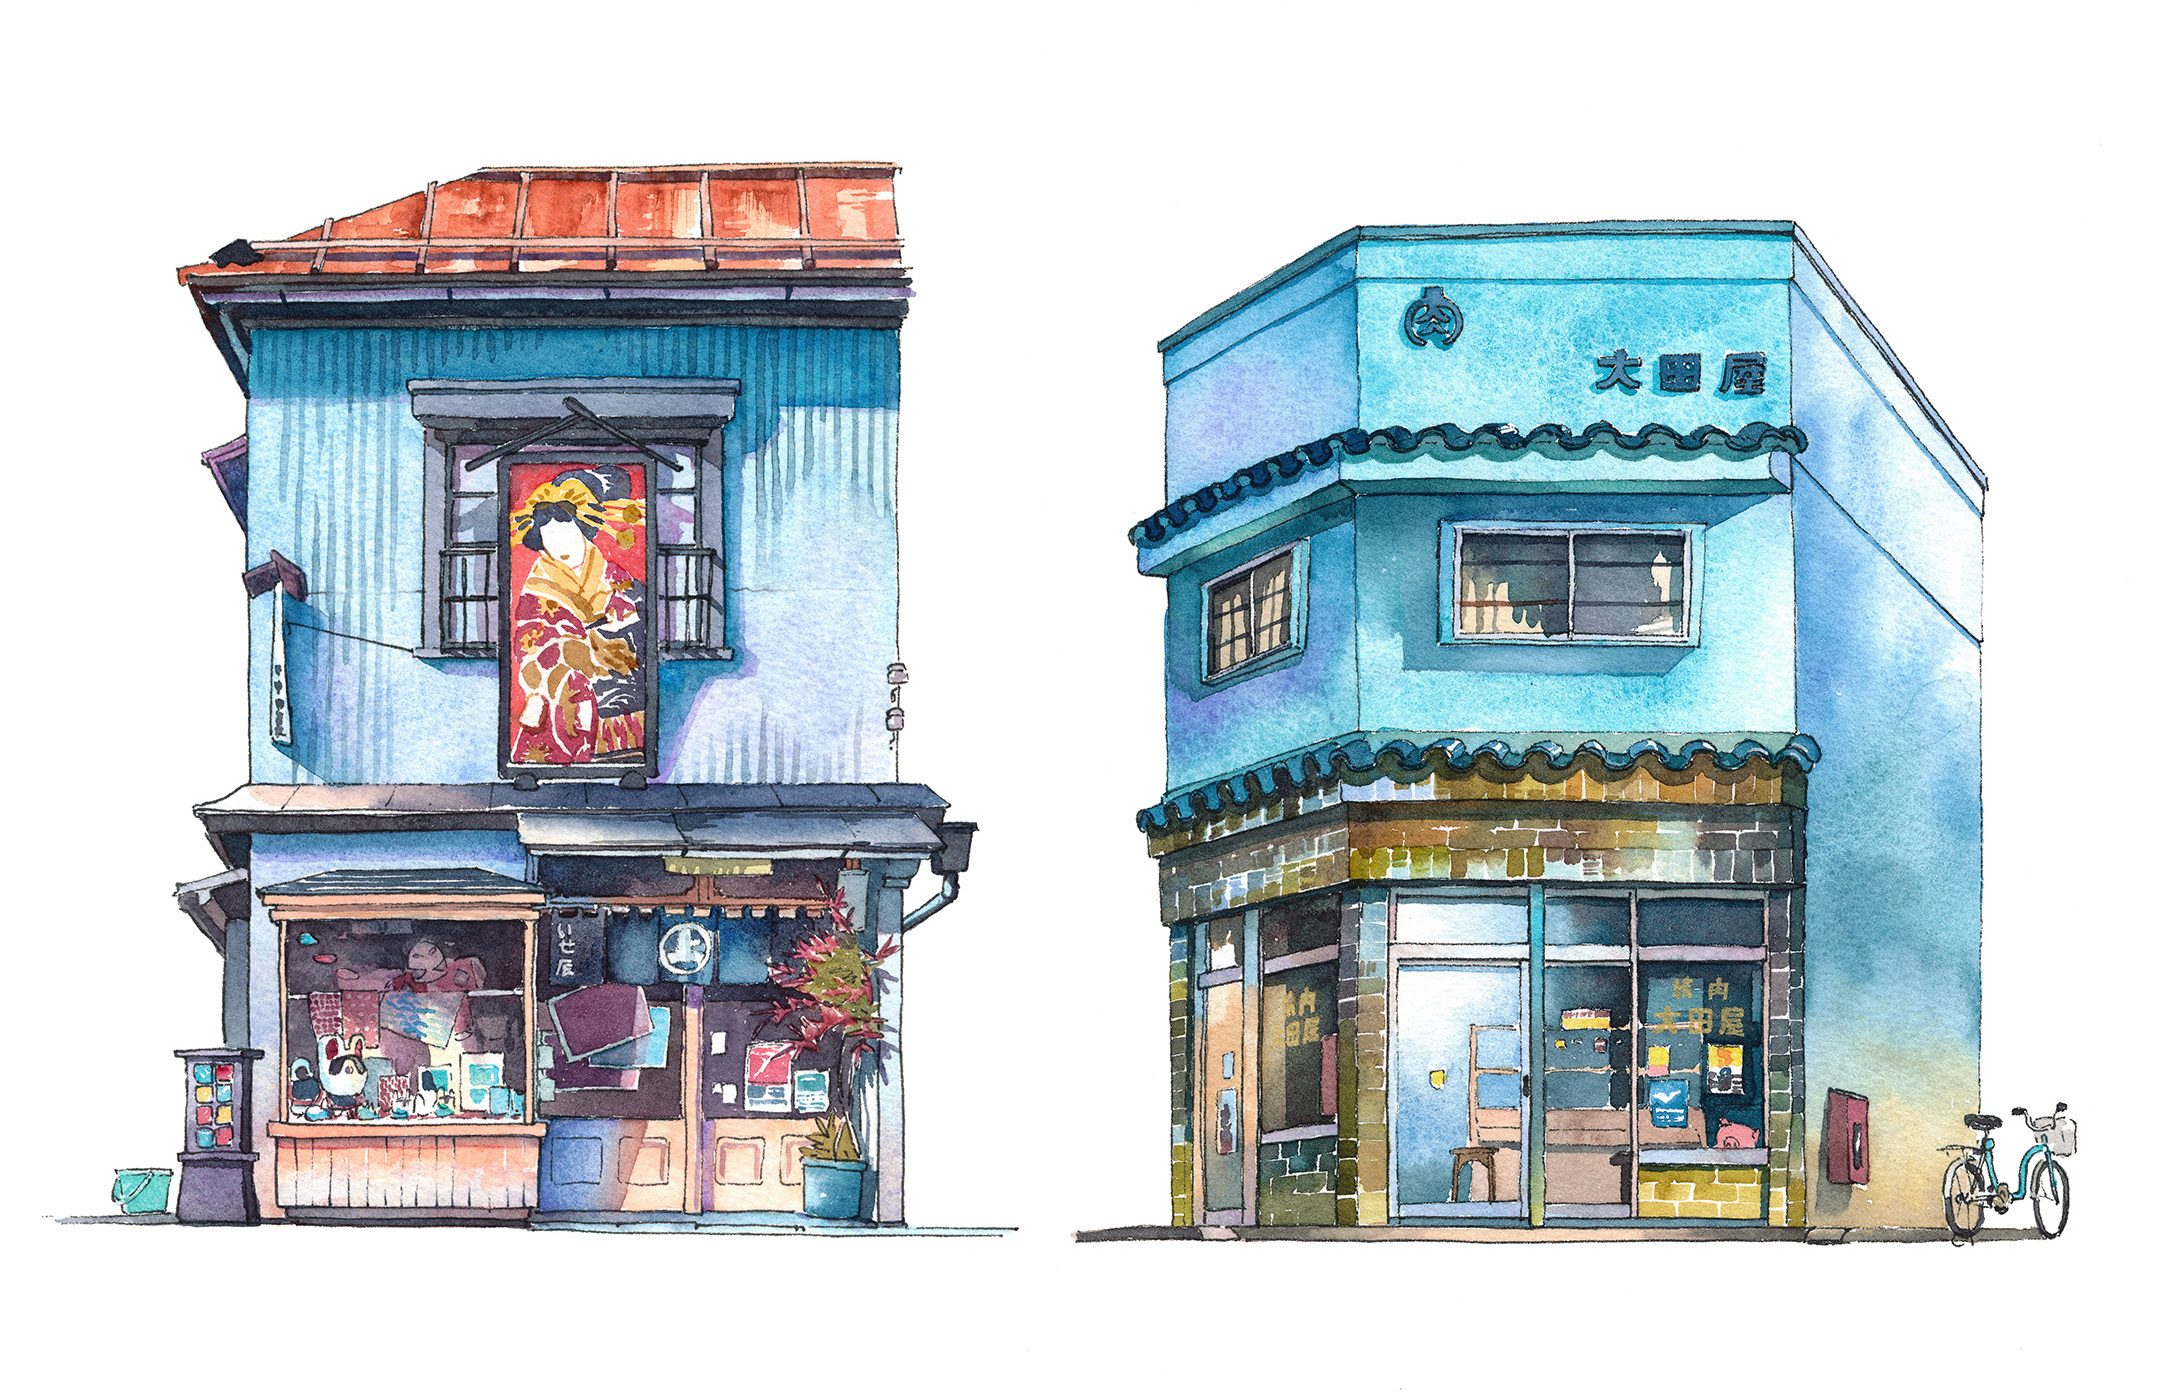 Tokyo Watercolor Storefronts Series by Mateusz Urbanowicz